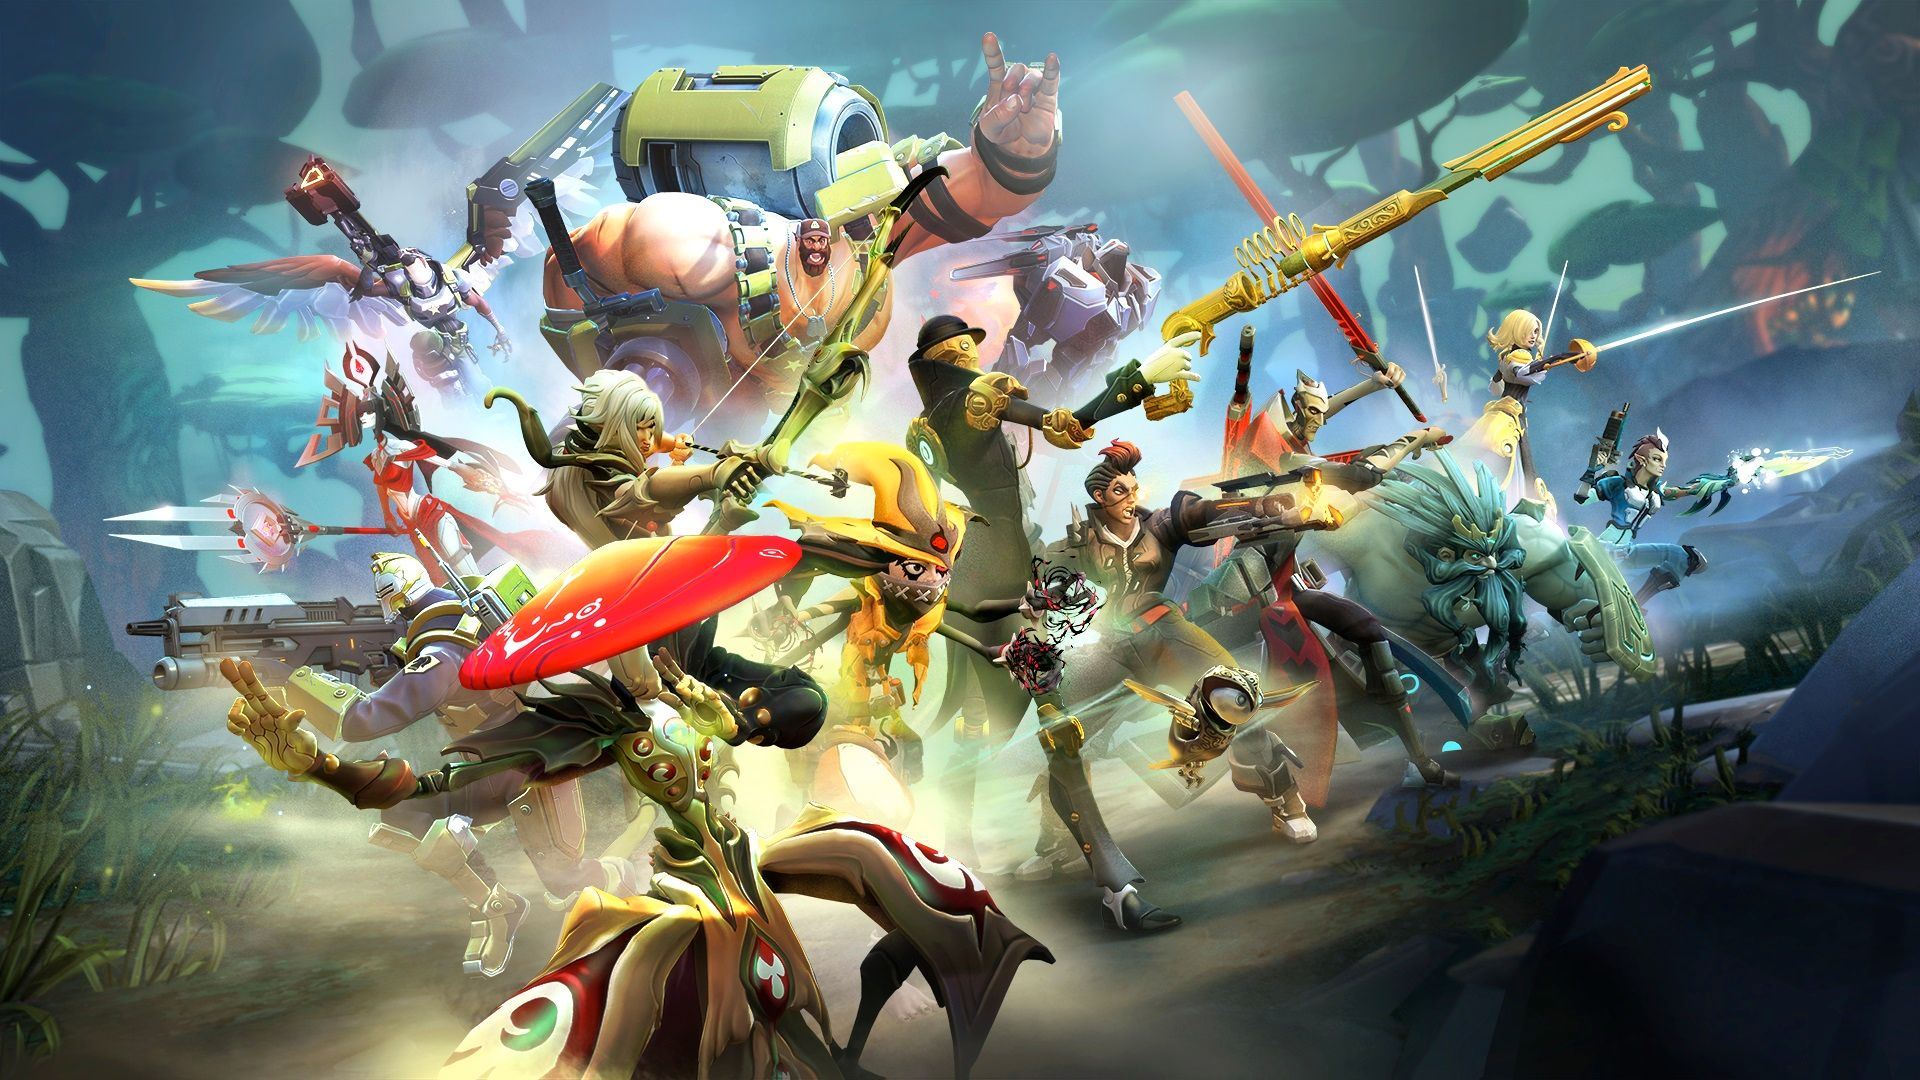 Battleborn Announcements At PlayStation Experience 2015